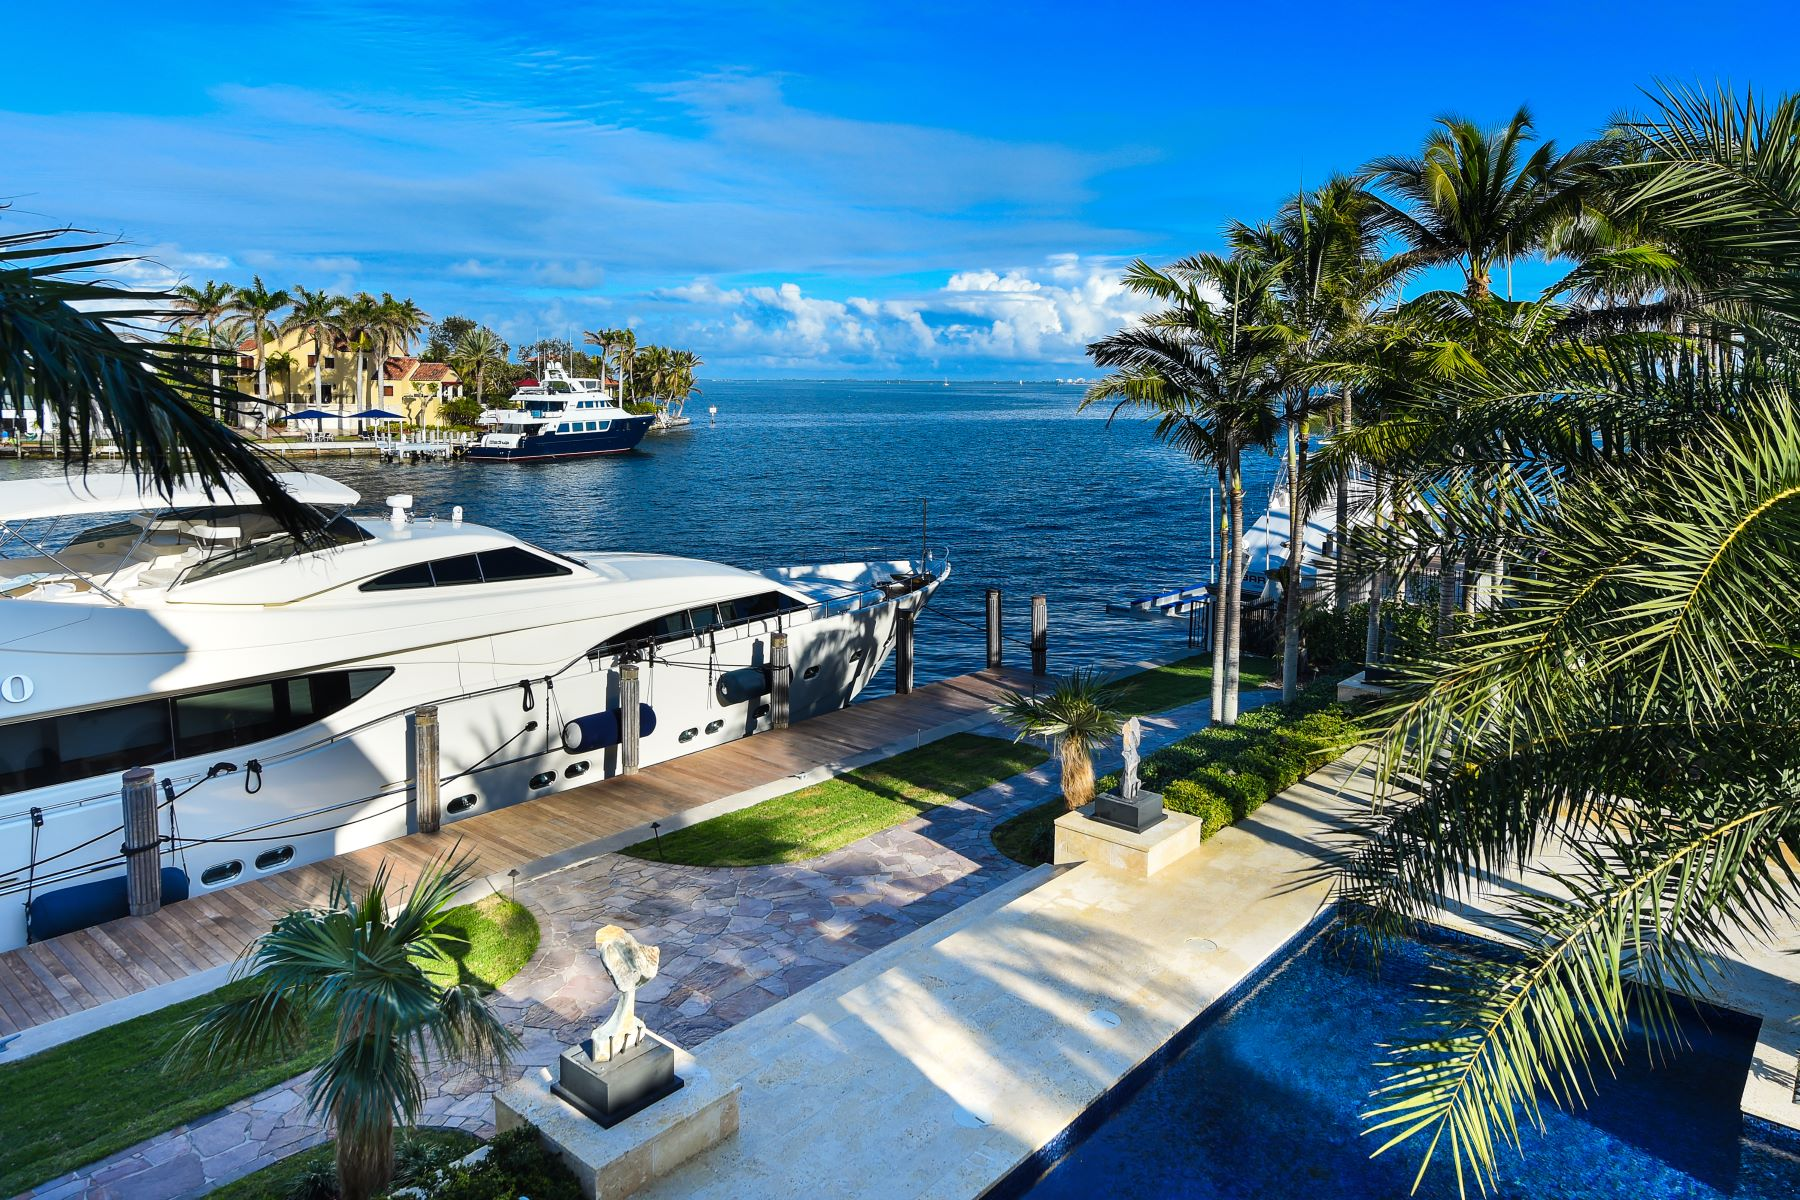 Additional photo for property listing at 23 Tahiti Beach Island Rd 23 Tahiti Beach Island Rd Coral Gables, Florida 33143 United States